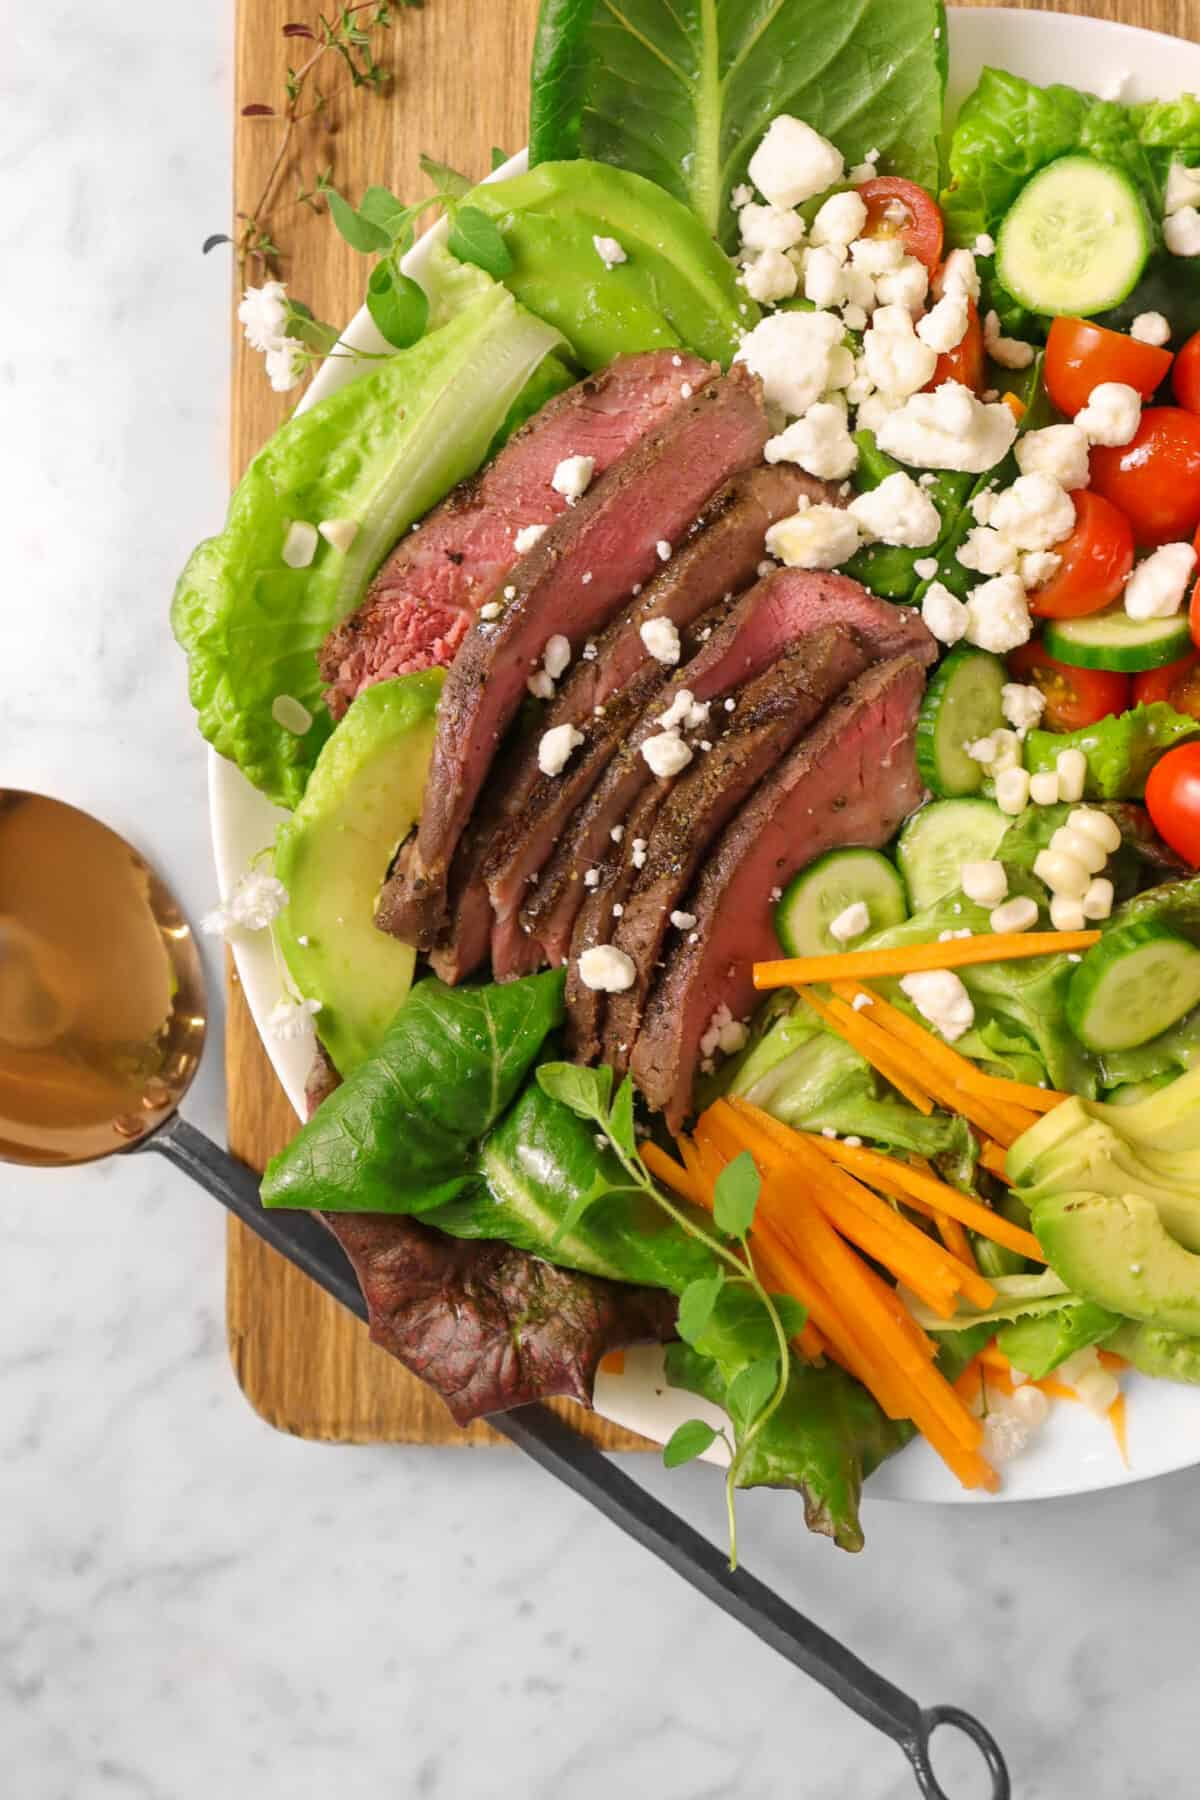 steak salad on a wood board with fresh herbs, flowers, and a copper serving spoon